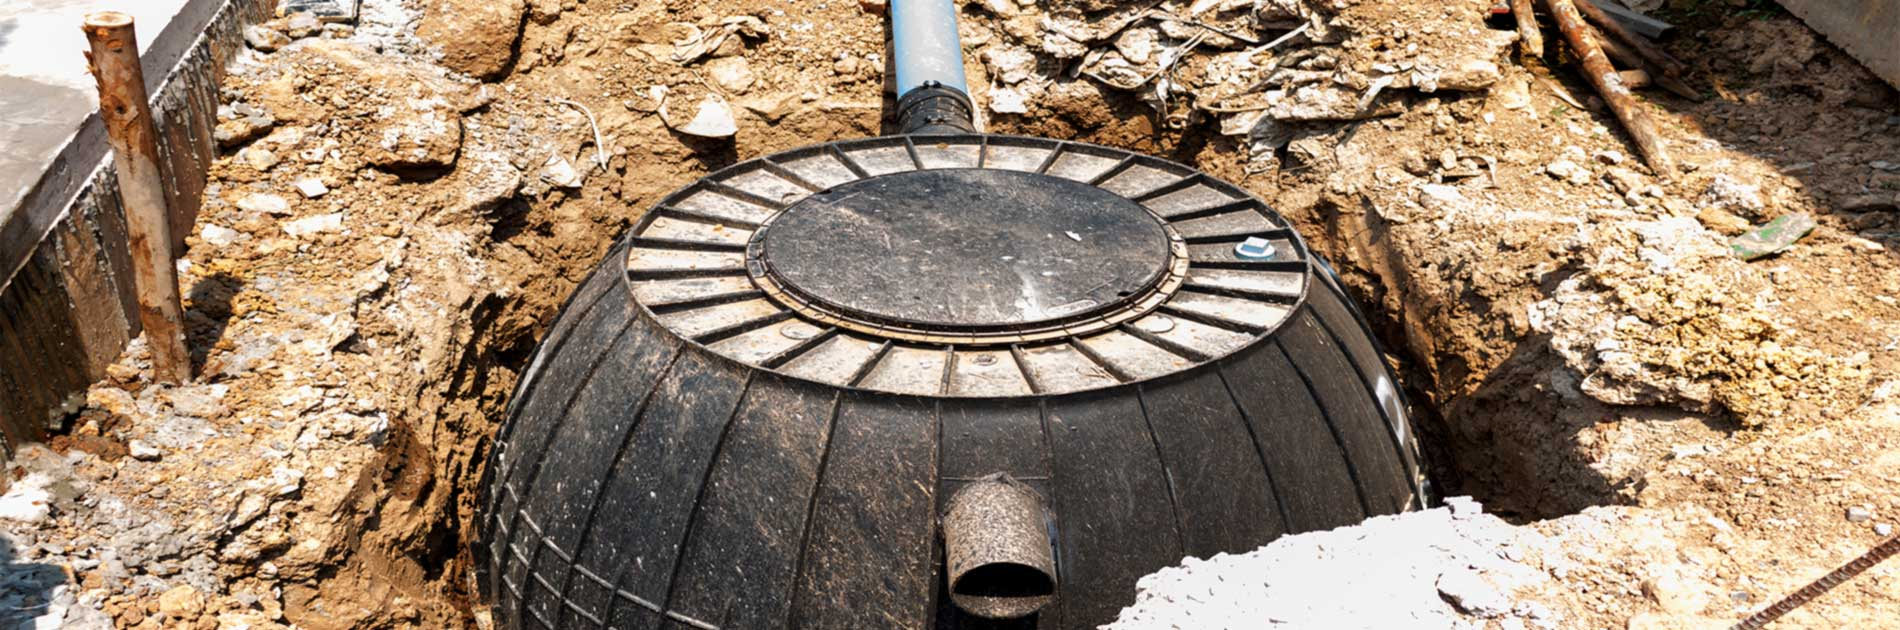 Septic Tank Pumping in Coryell County, TX | Septic Cleaning